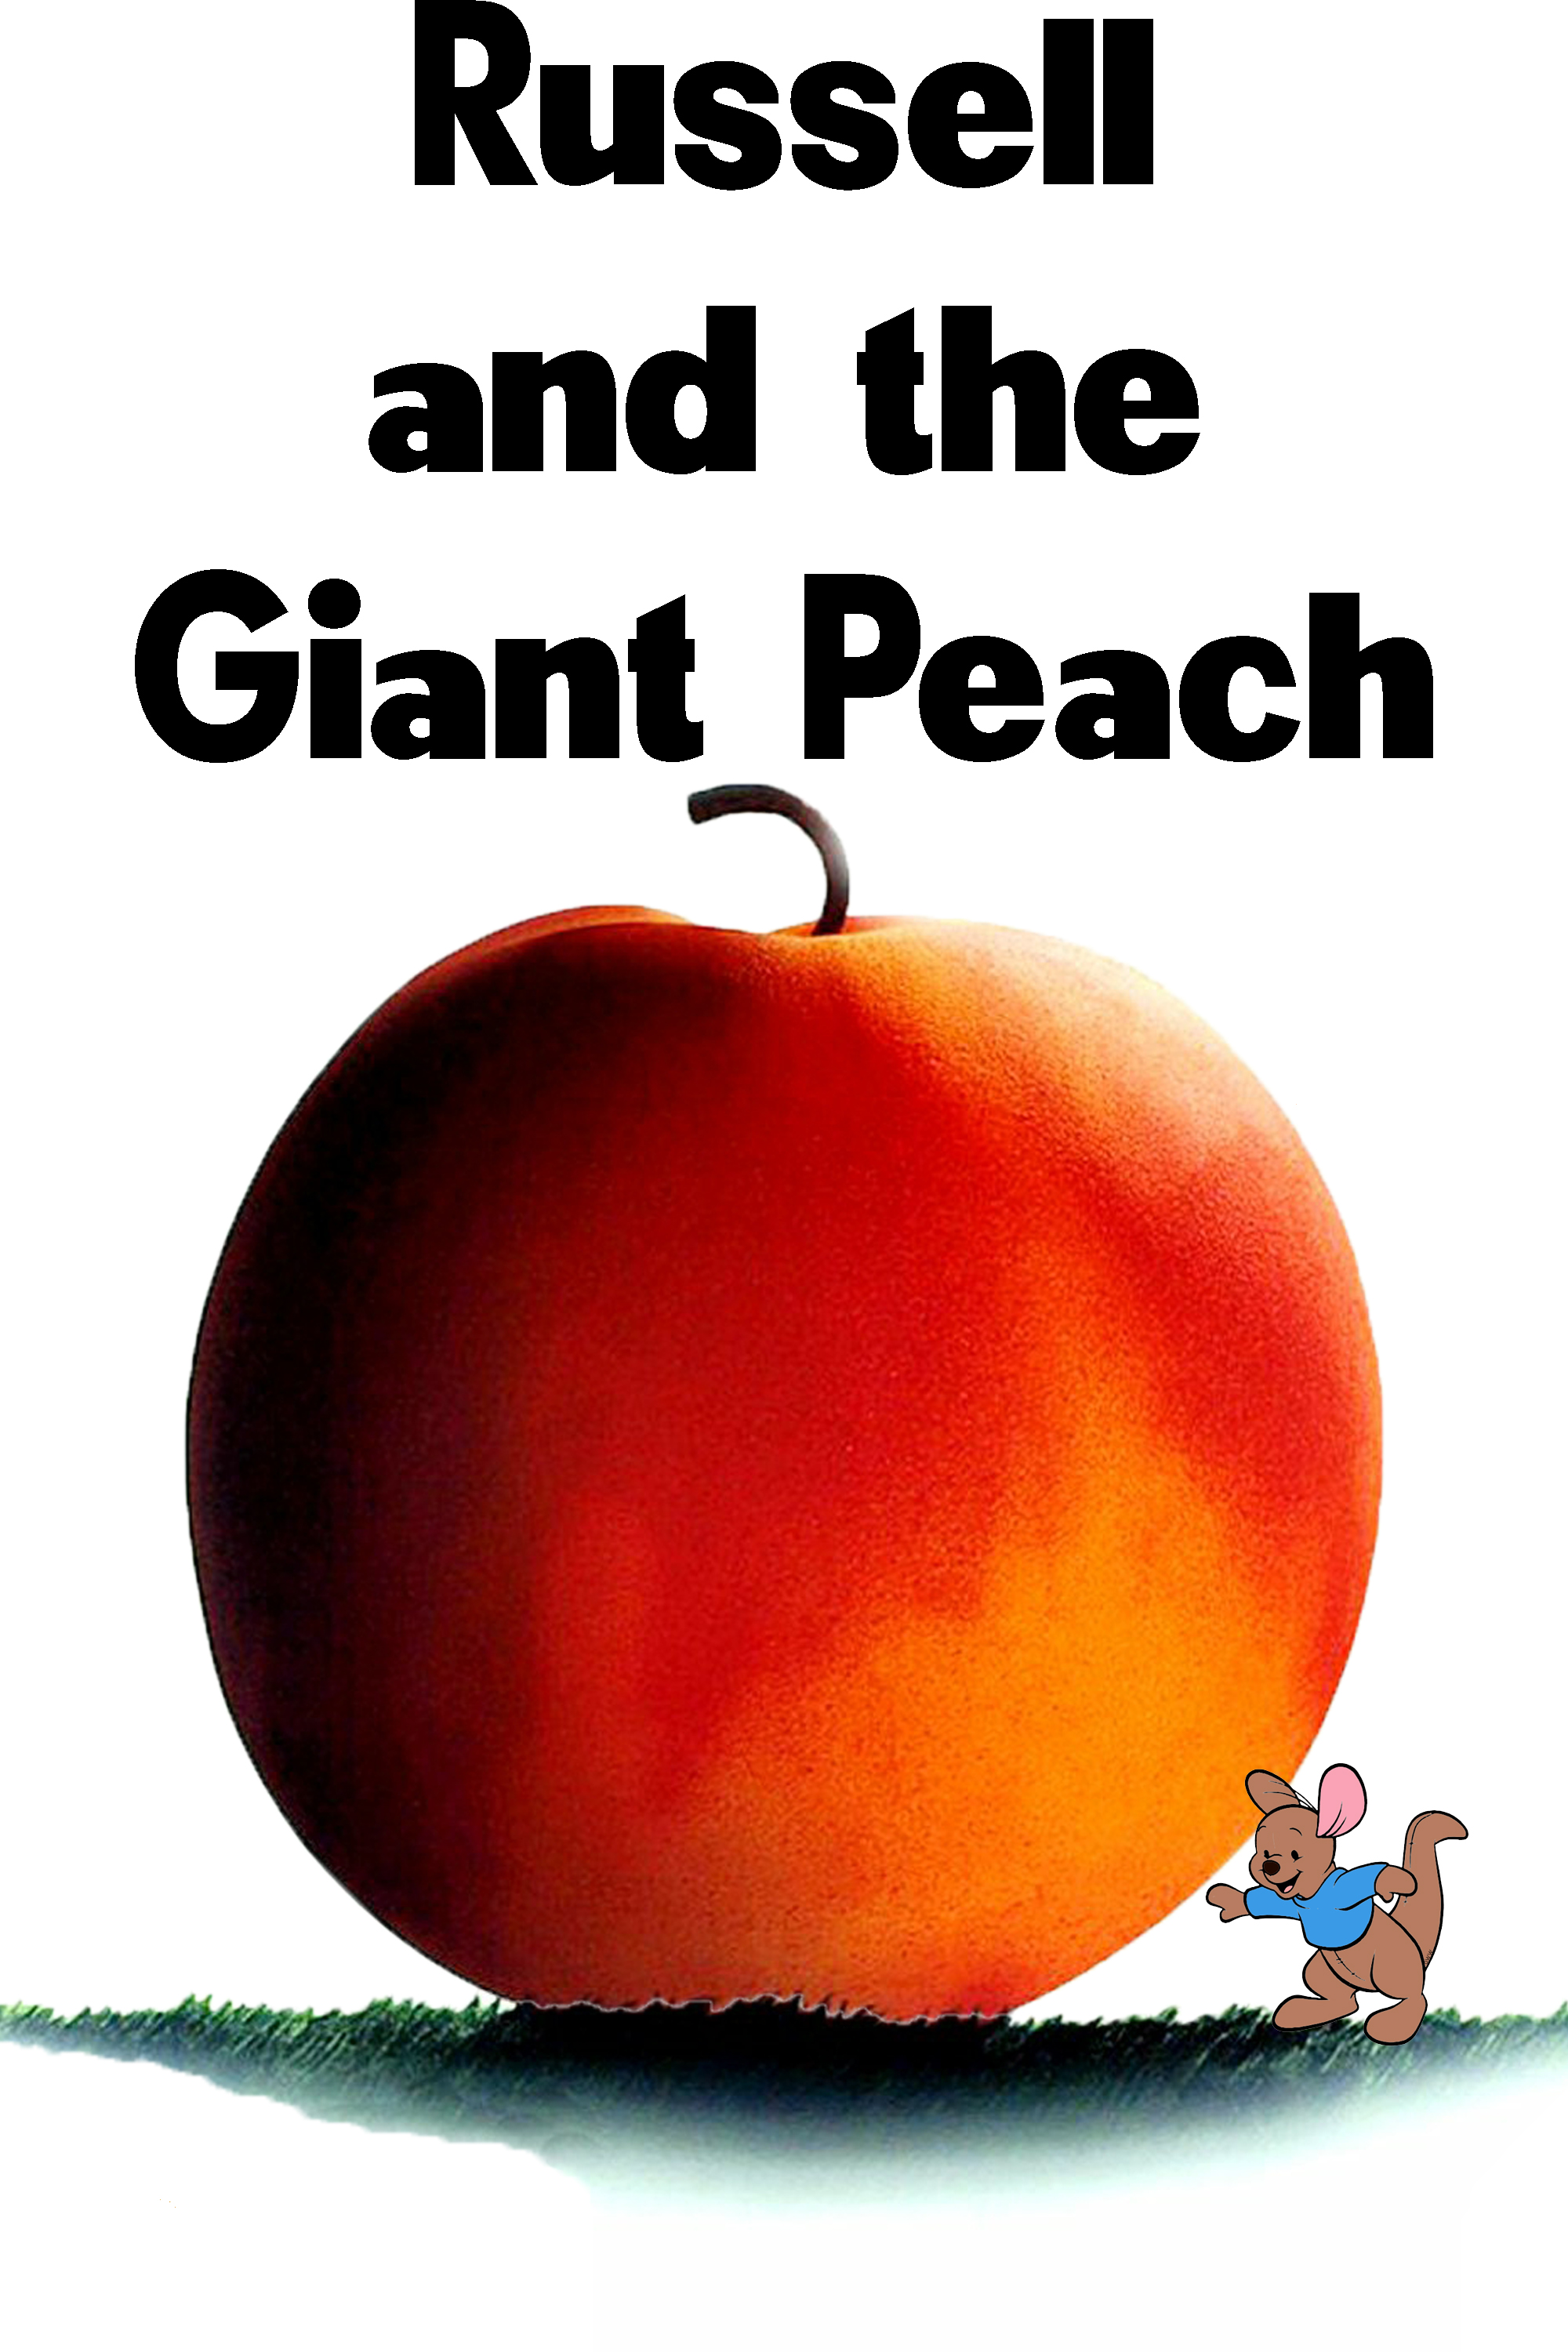 Russell and the Giant Peach